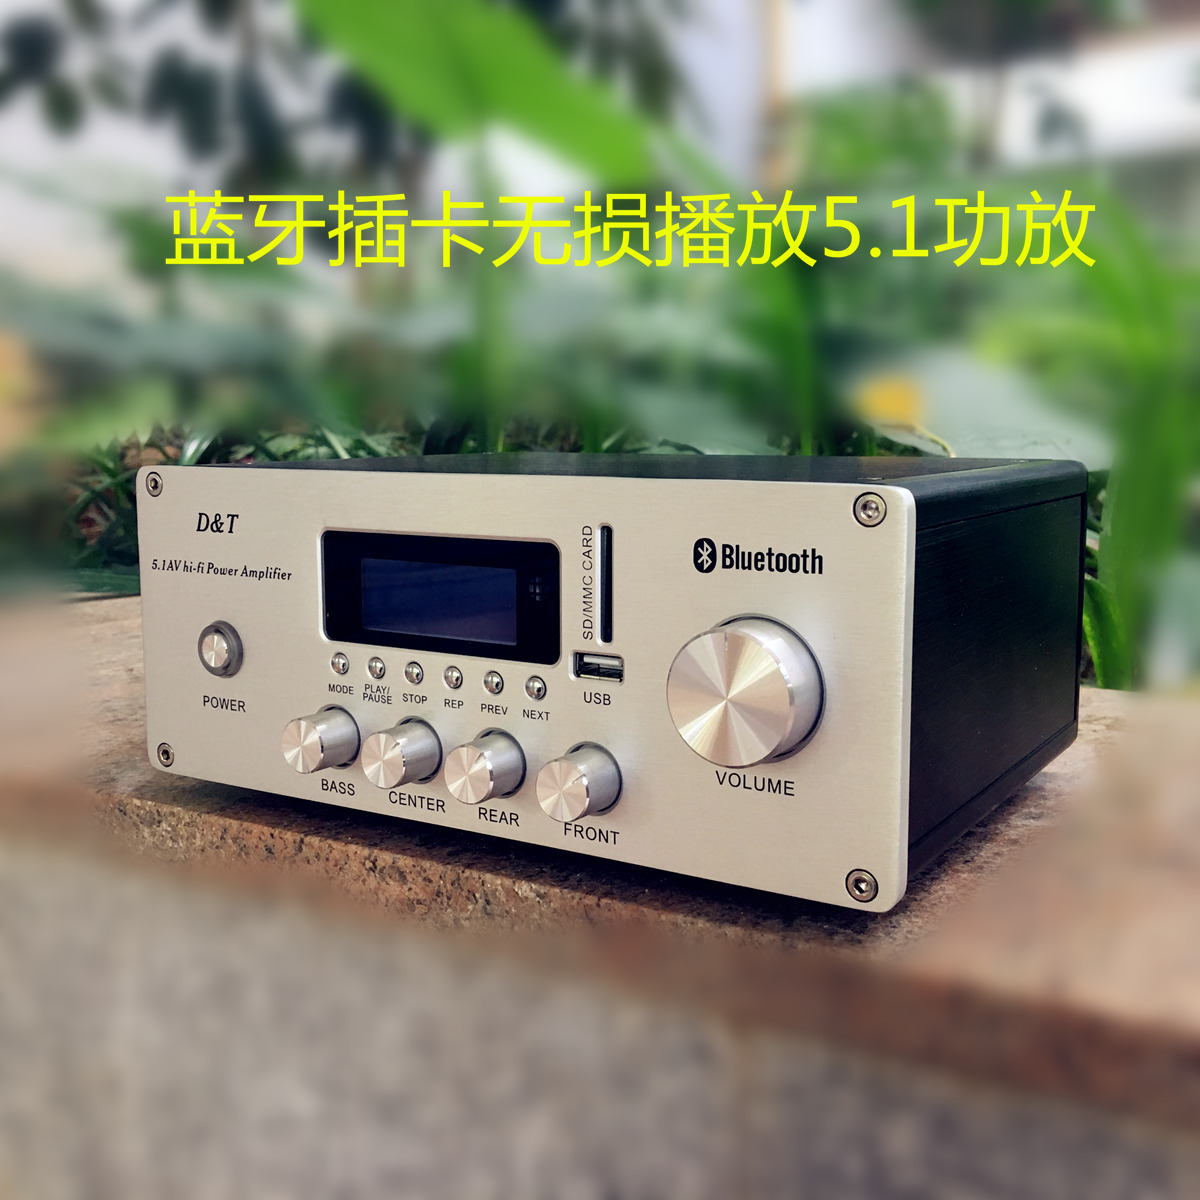 все цены на 5.1-channel Bluetooth USB channel card to play lossless music 6-channel home audio and video amplifier онлайн